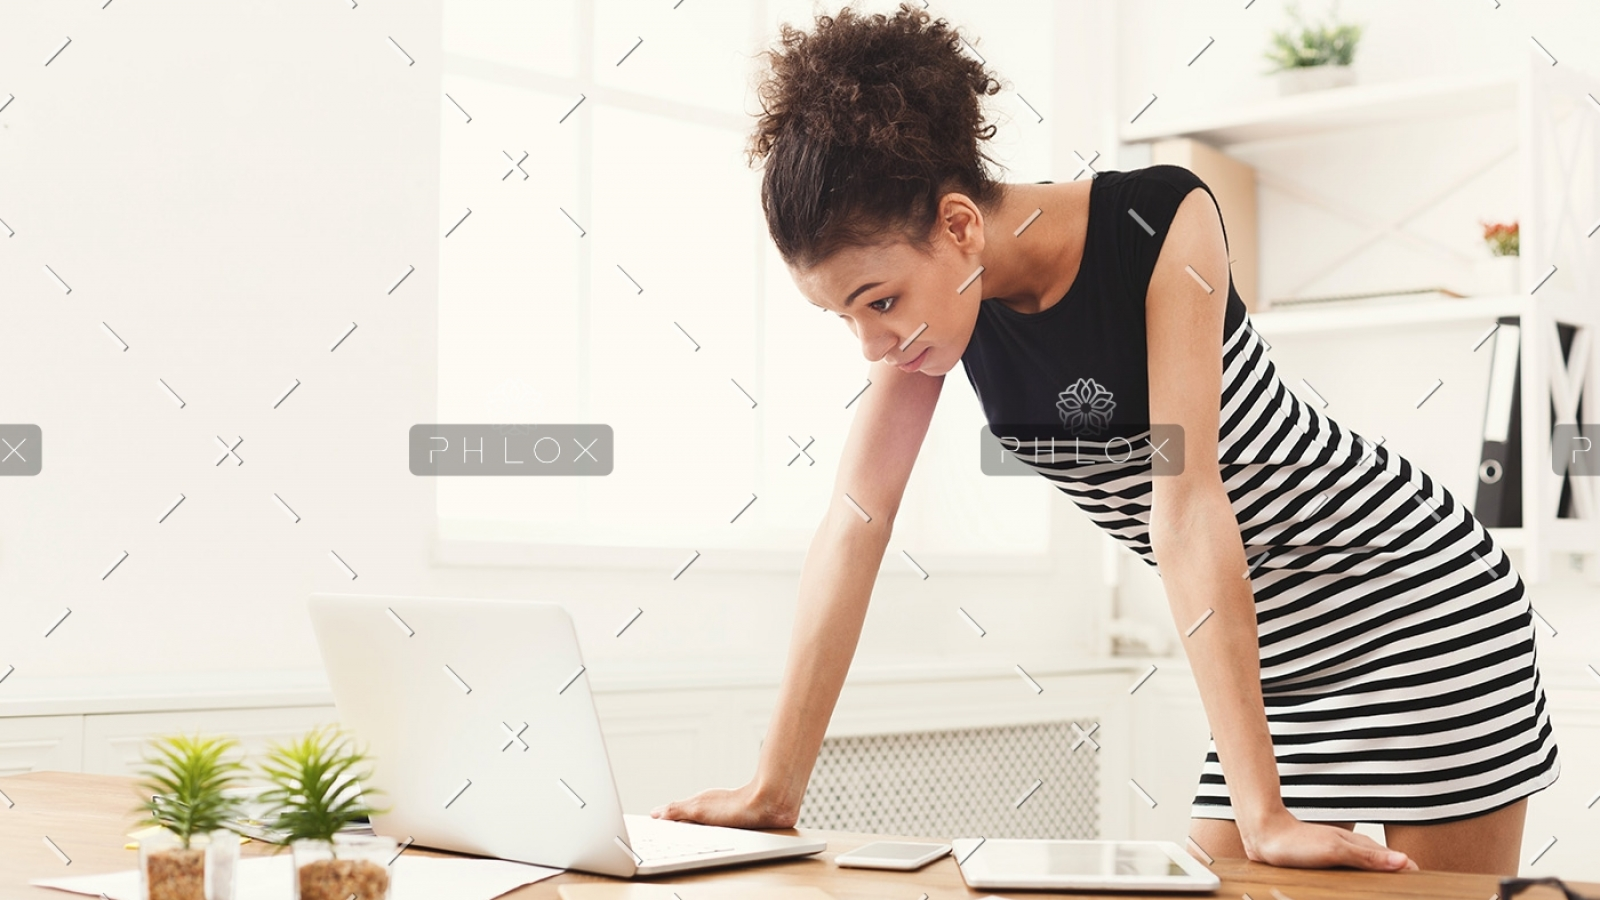 business-woman-working-on-laptop-at-office-PRFJKQJ-1